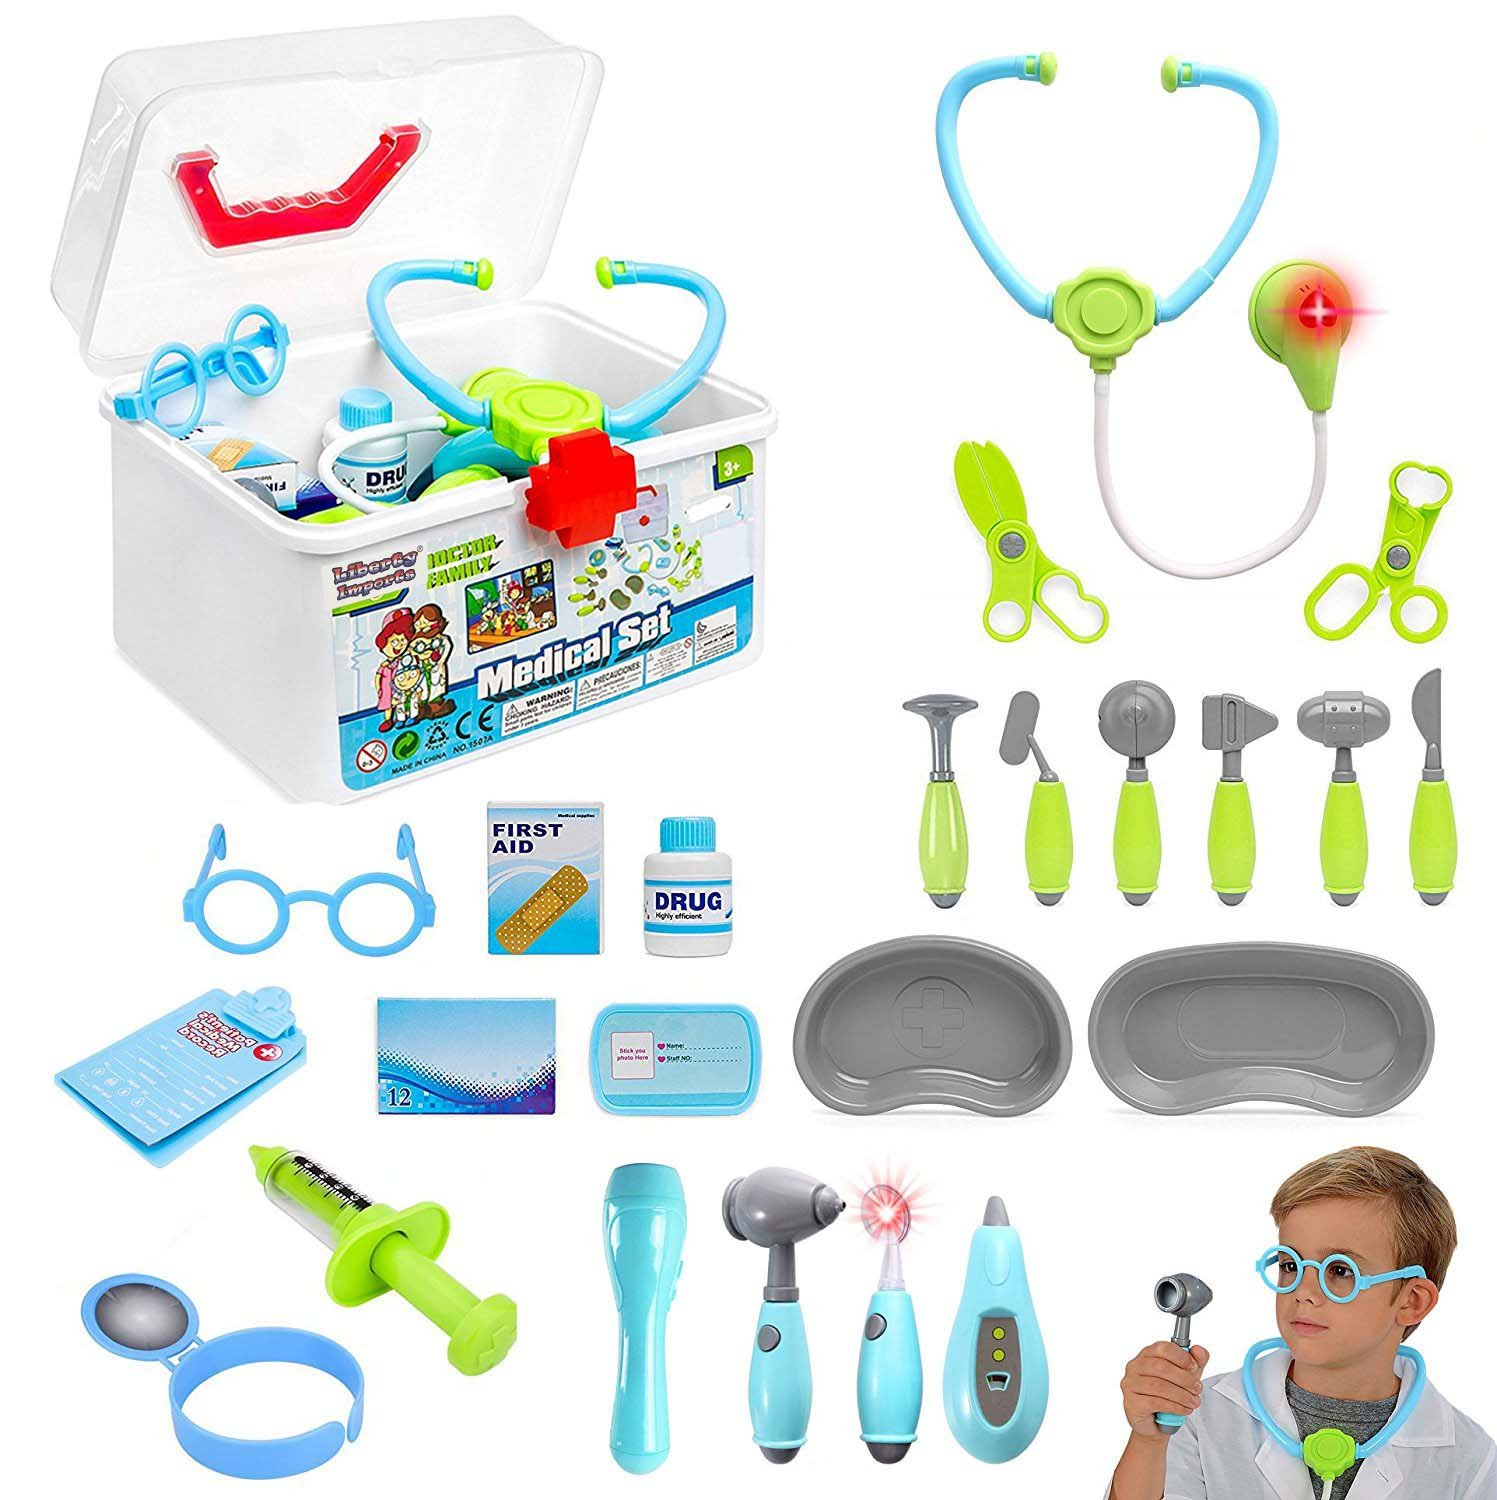 Liberty Imports Kids Doctor Set - 24 Pieces Role Play Nurse Medical Box Kit with Electronic Stethoscope and Pretend Play Accessories - Educational Gift for 3, 4, 5, 6 Year Old Boys, Girls by Liberty Imports